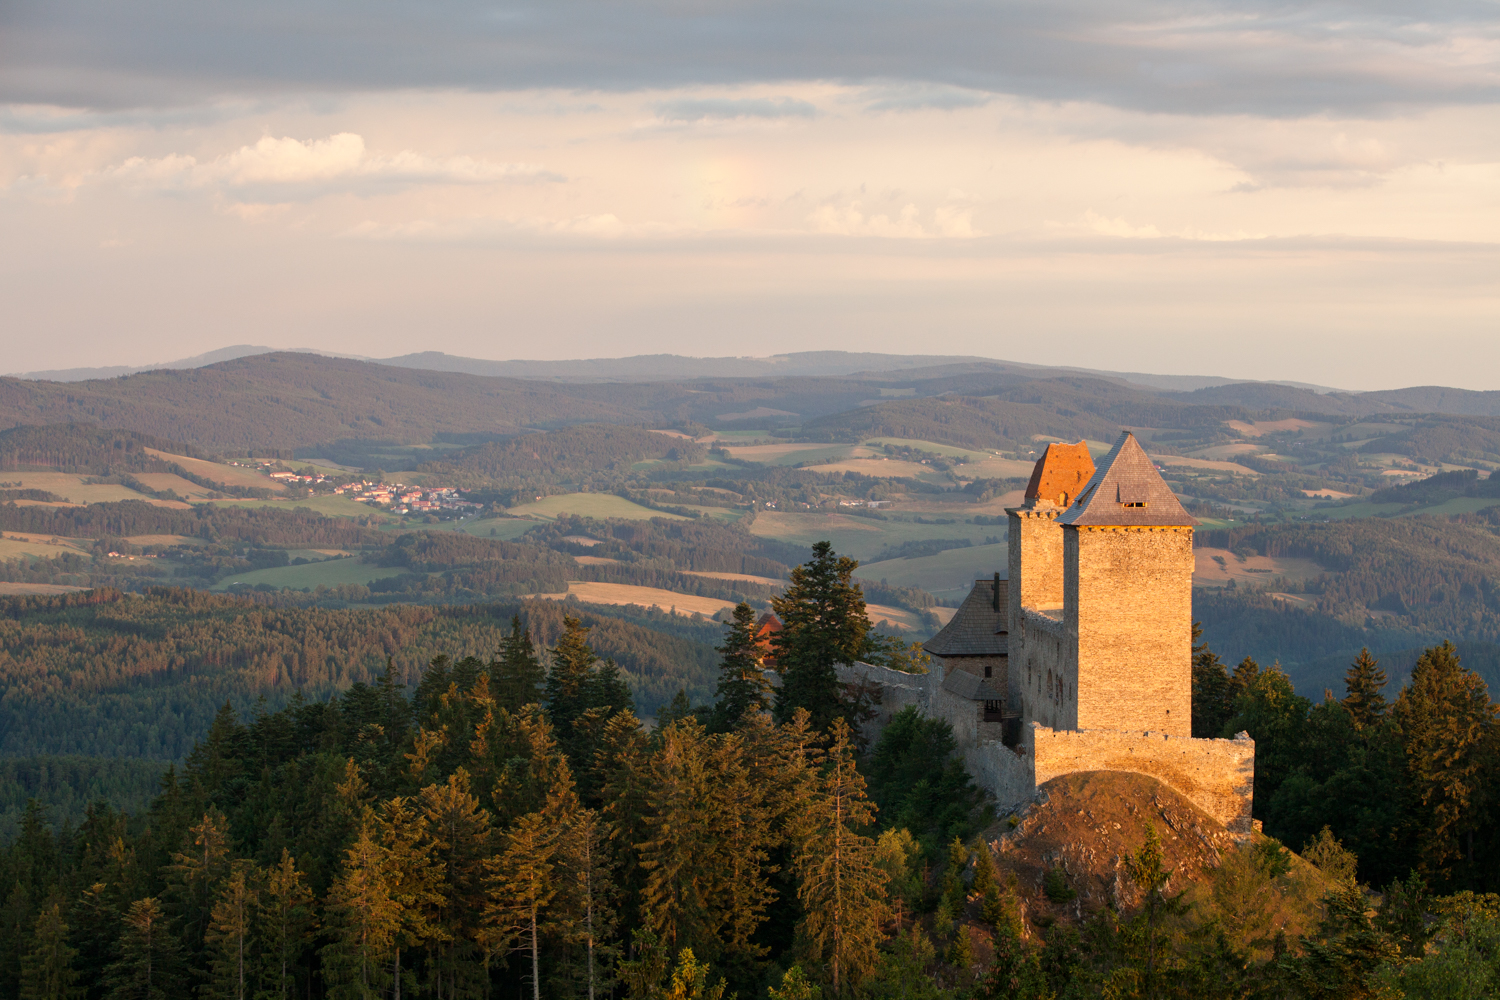 20140701_Prague_National_Geographic_Student_Expeditions_2385.jpg